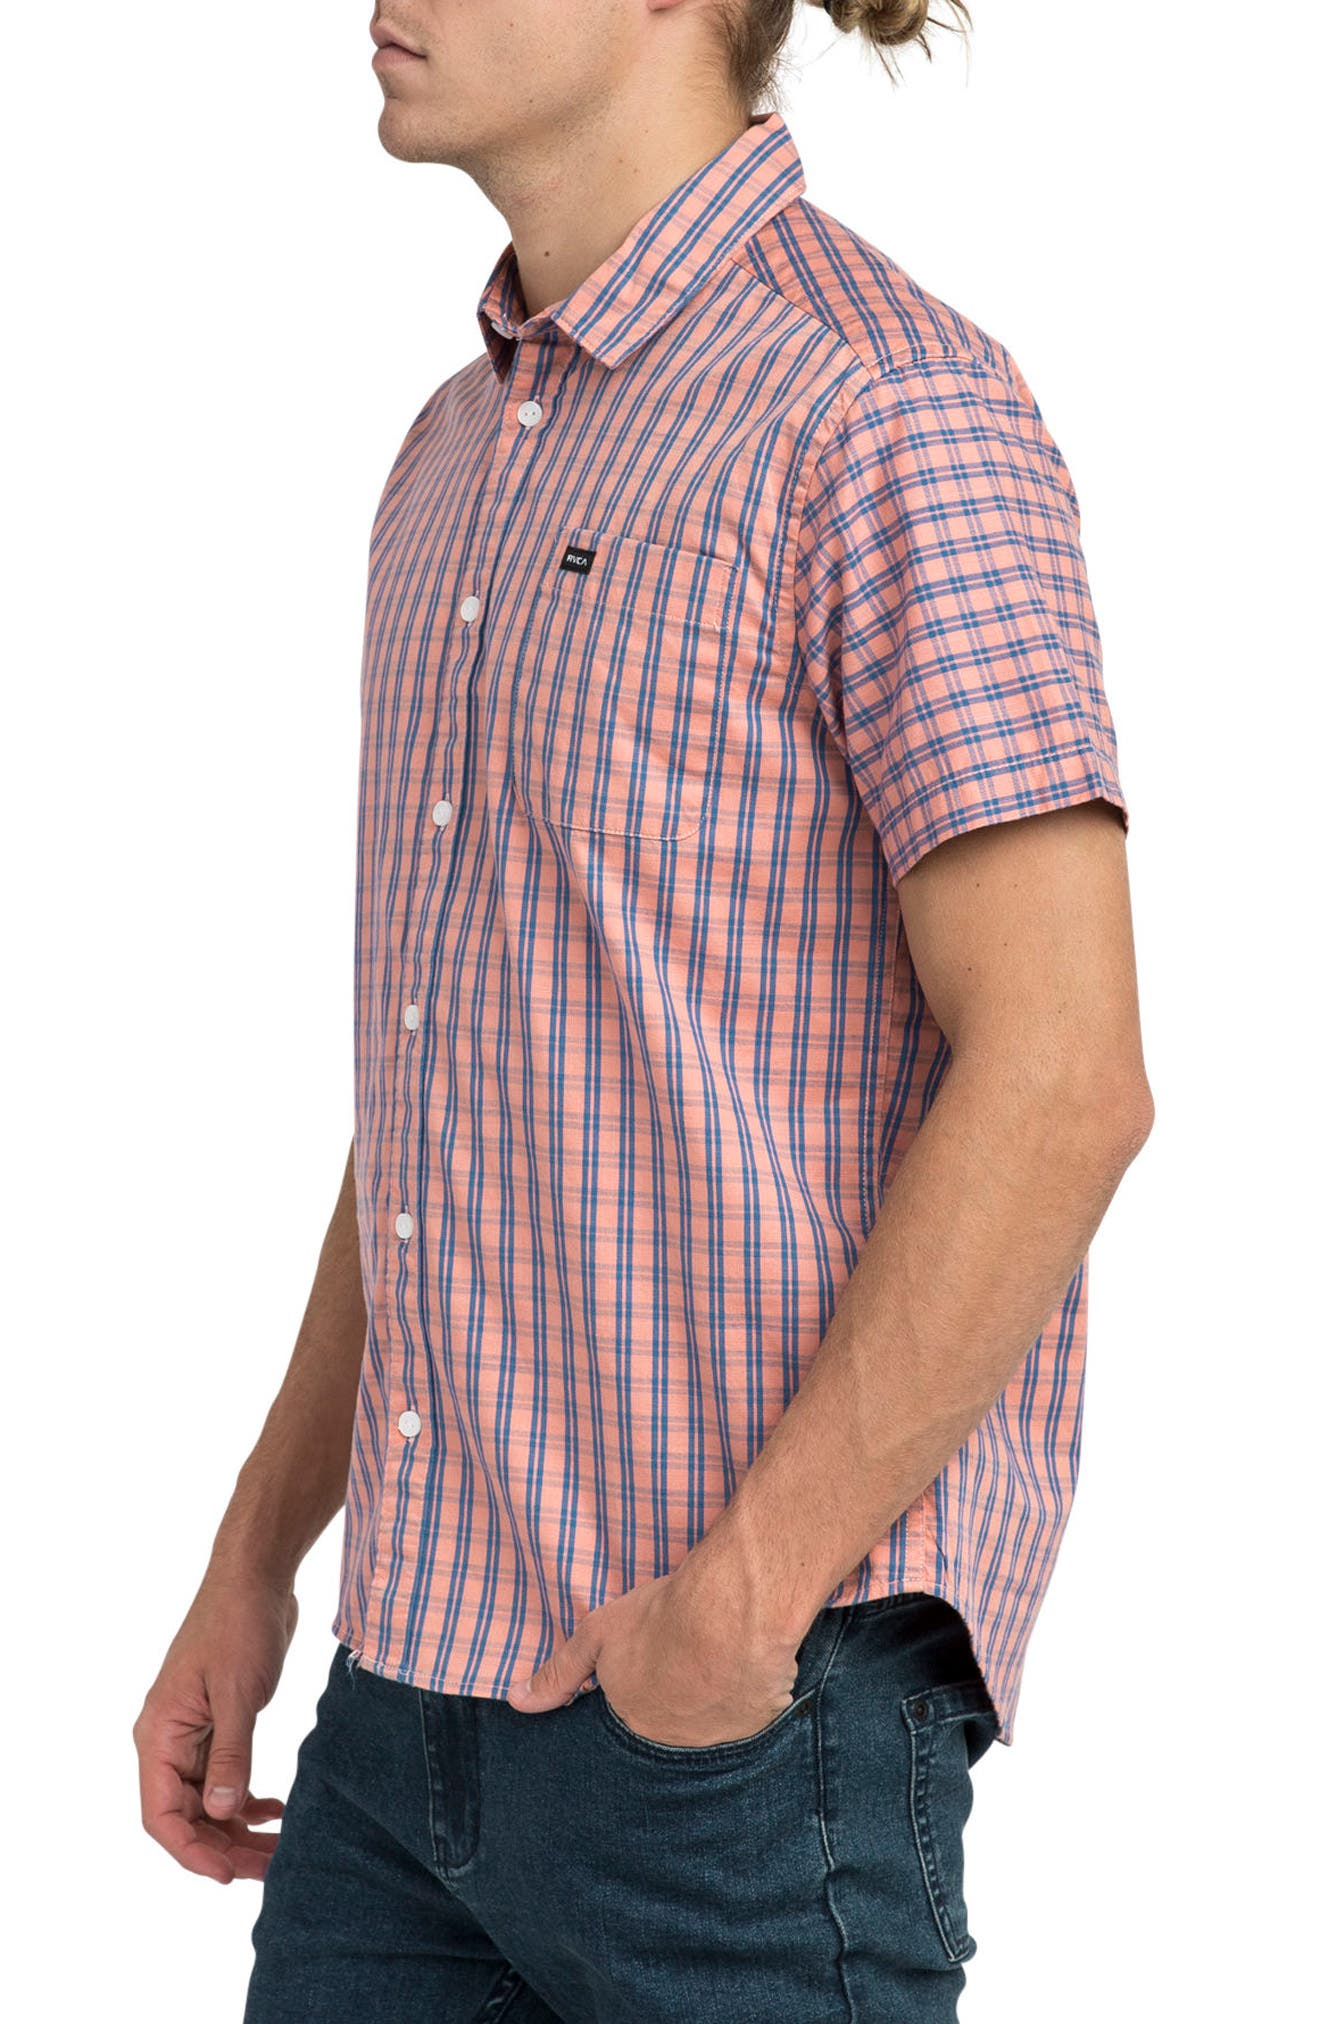 Delivery Woven Shirt,                             Alternate thumbnail 3, color,                             200